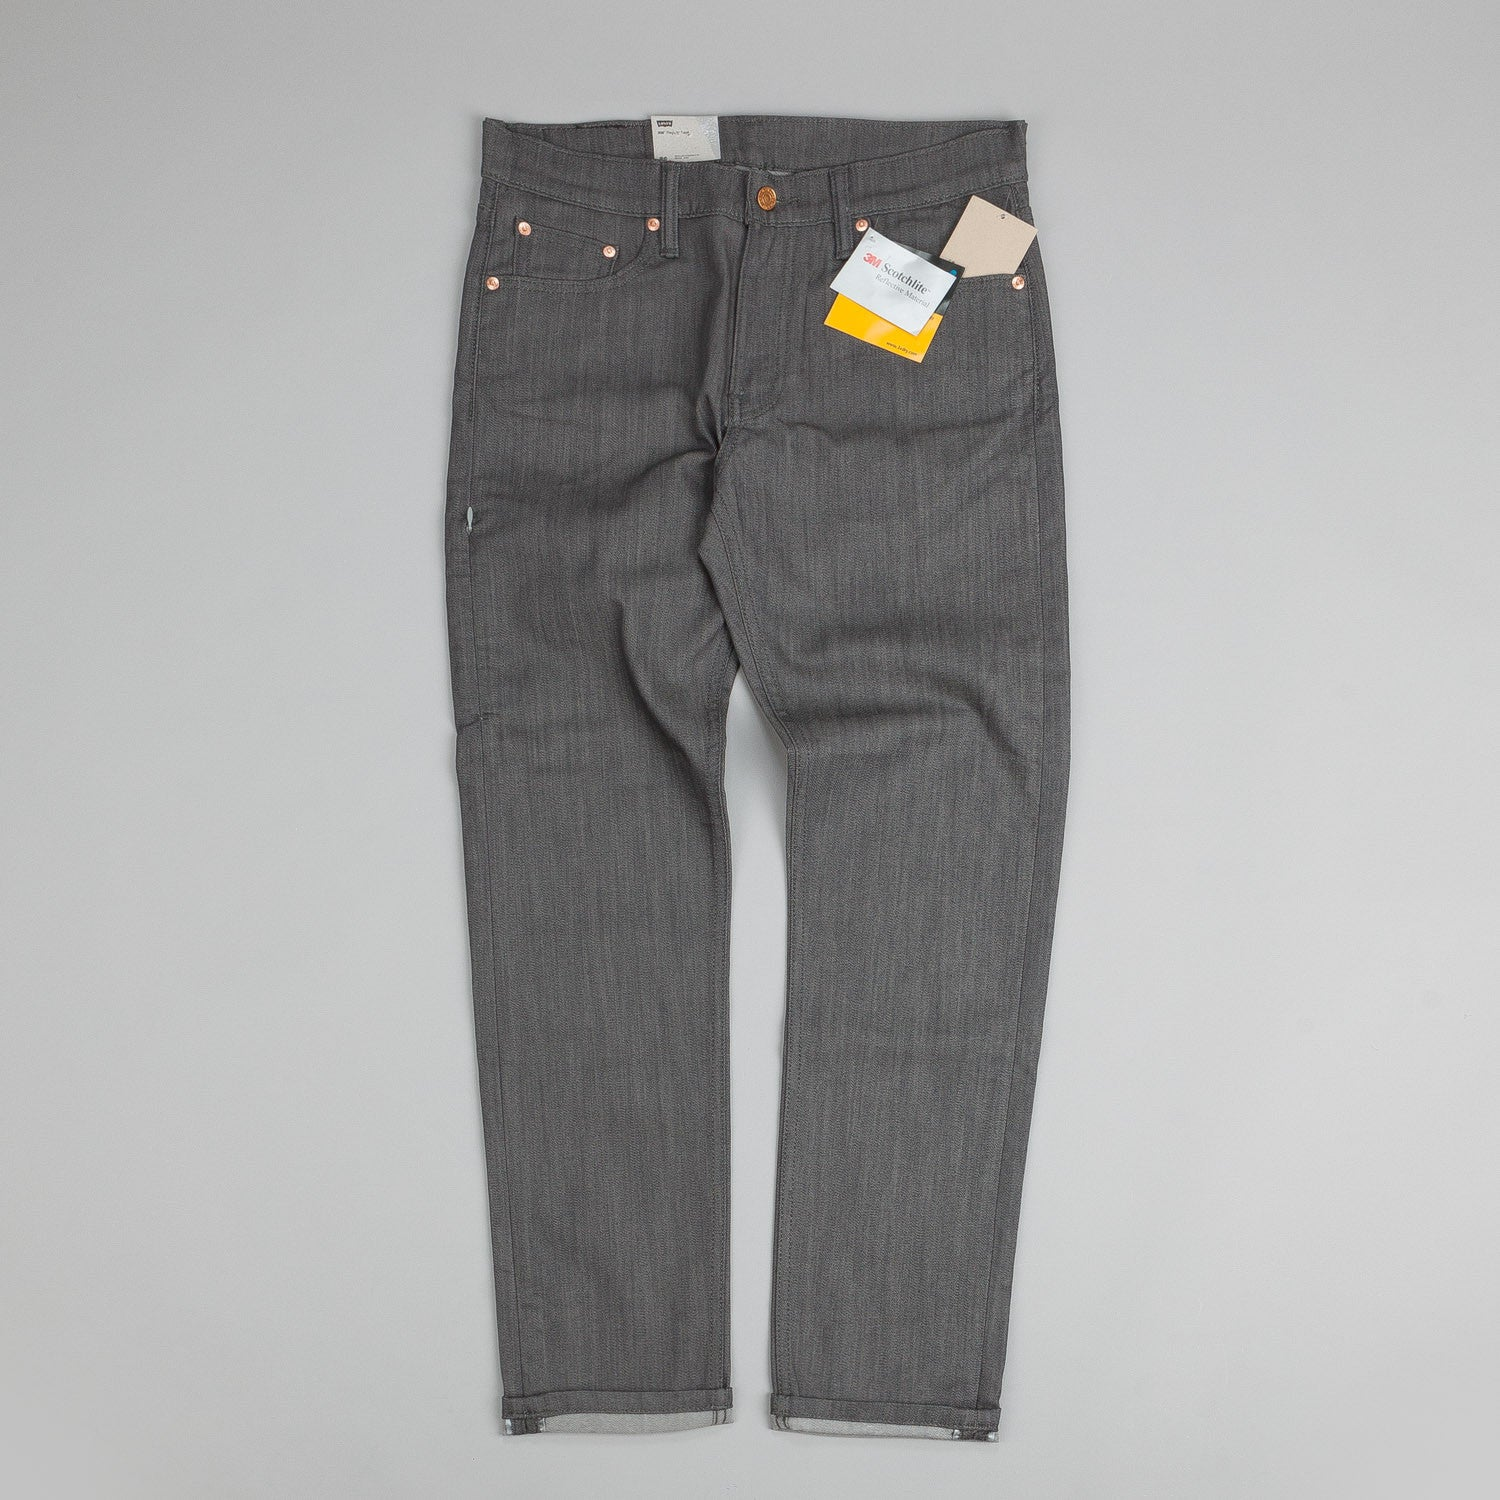 Levi's® Commuter 508 Jeans Grey Denim Rigid